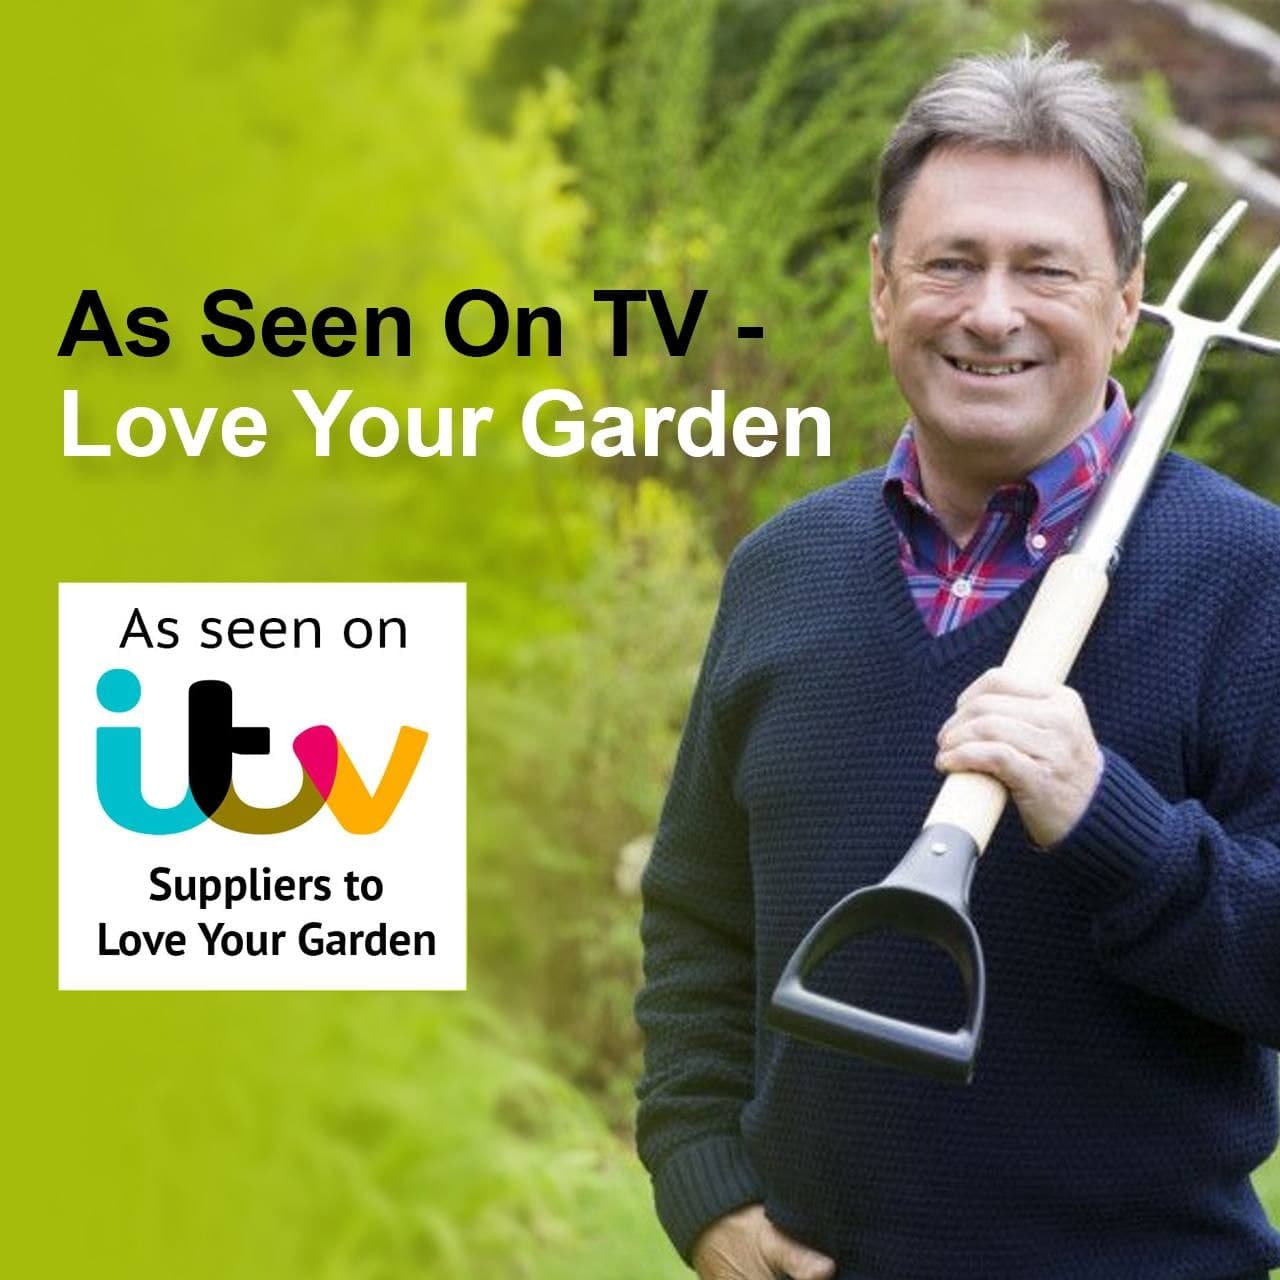 As seen On ITV - Suppliers to Love Your Garden